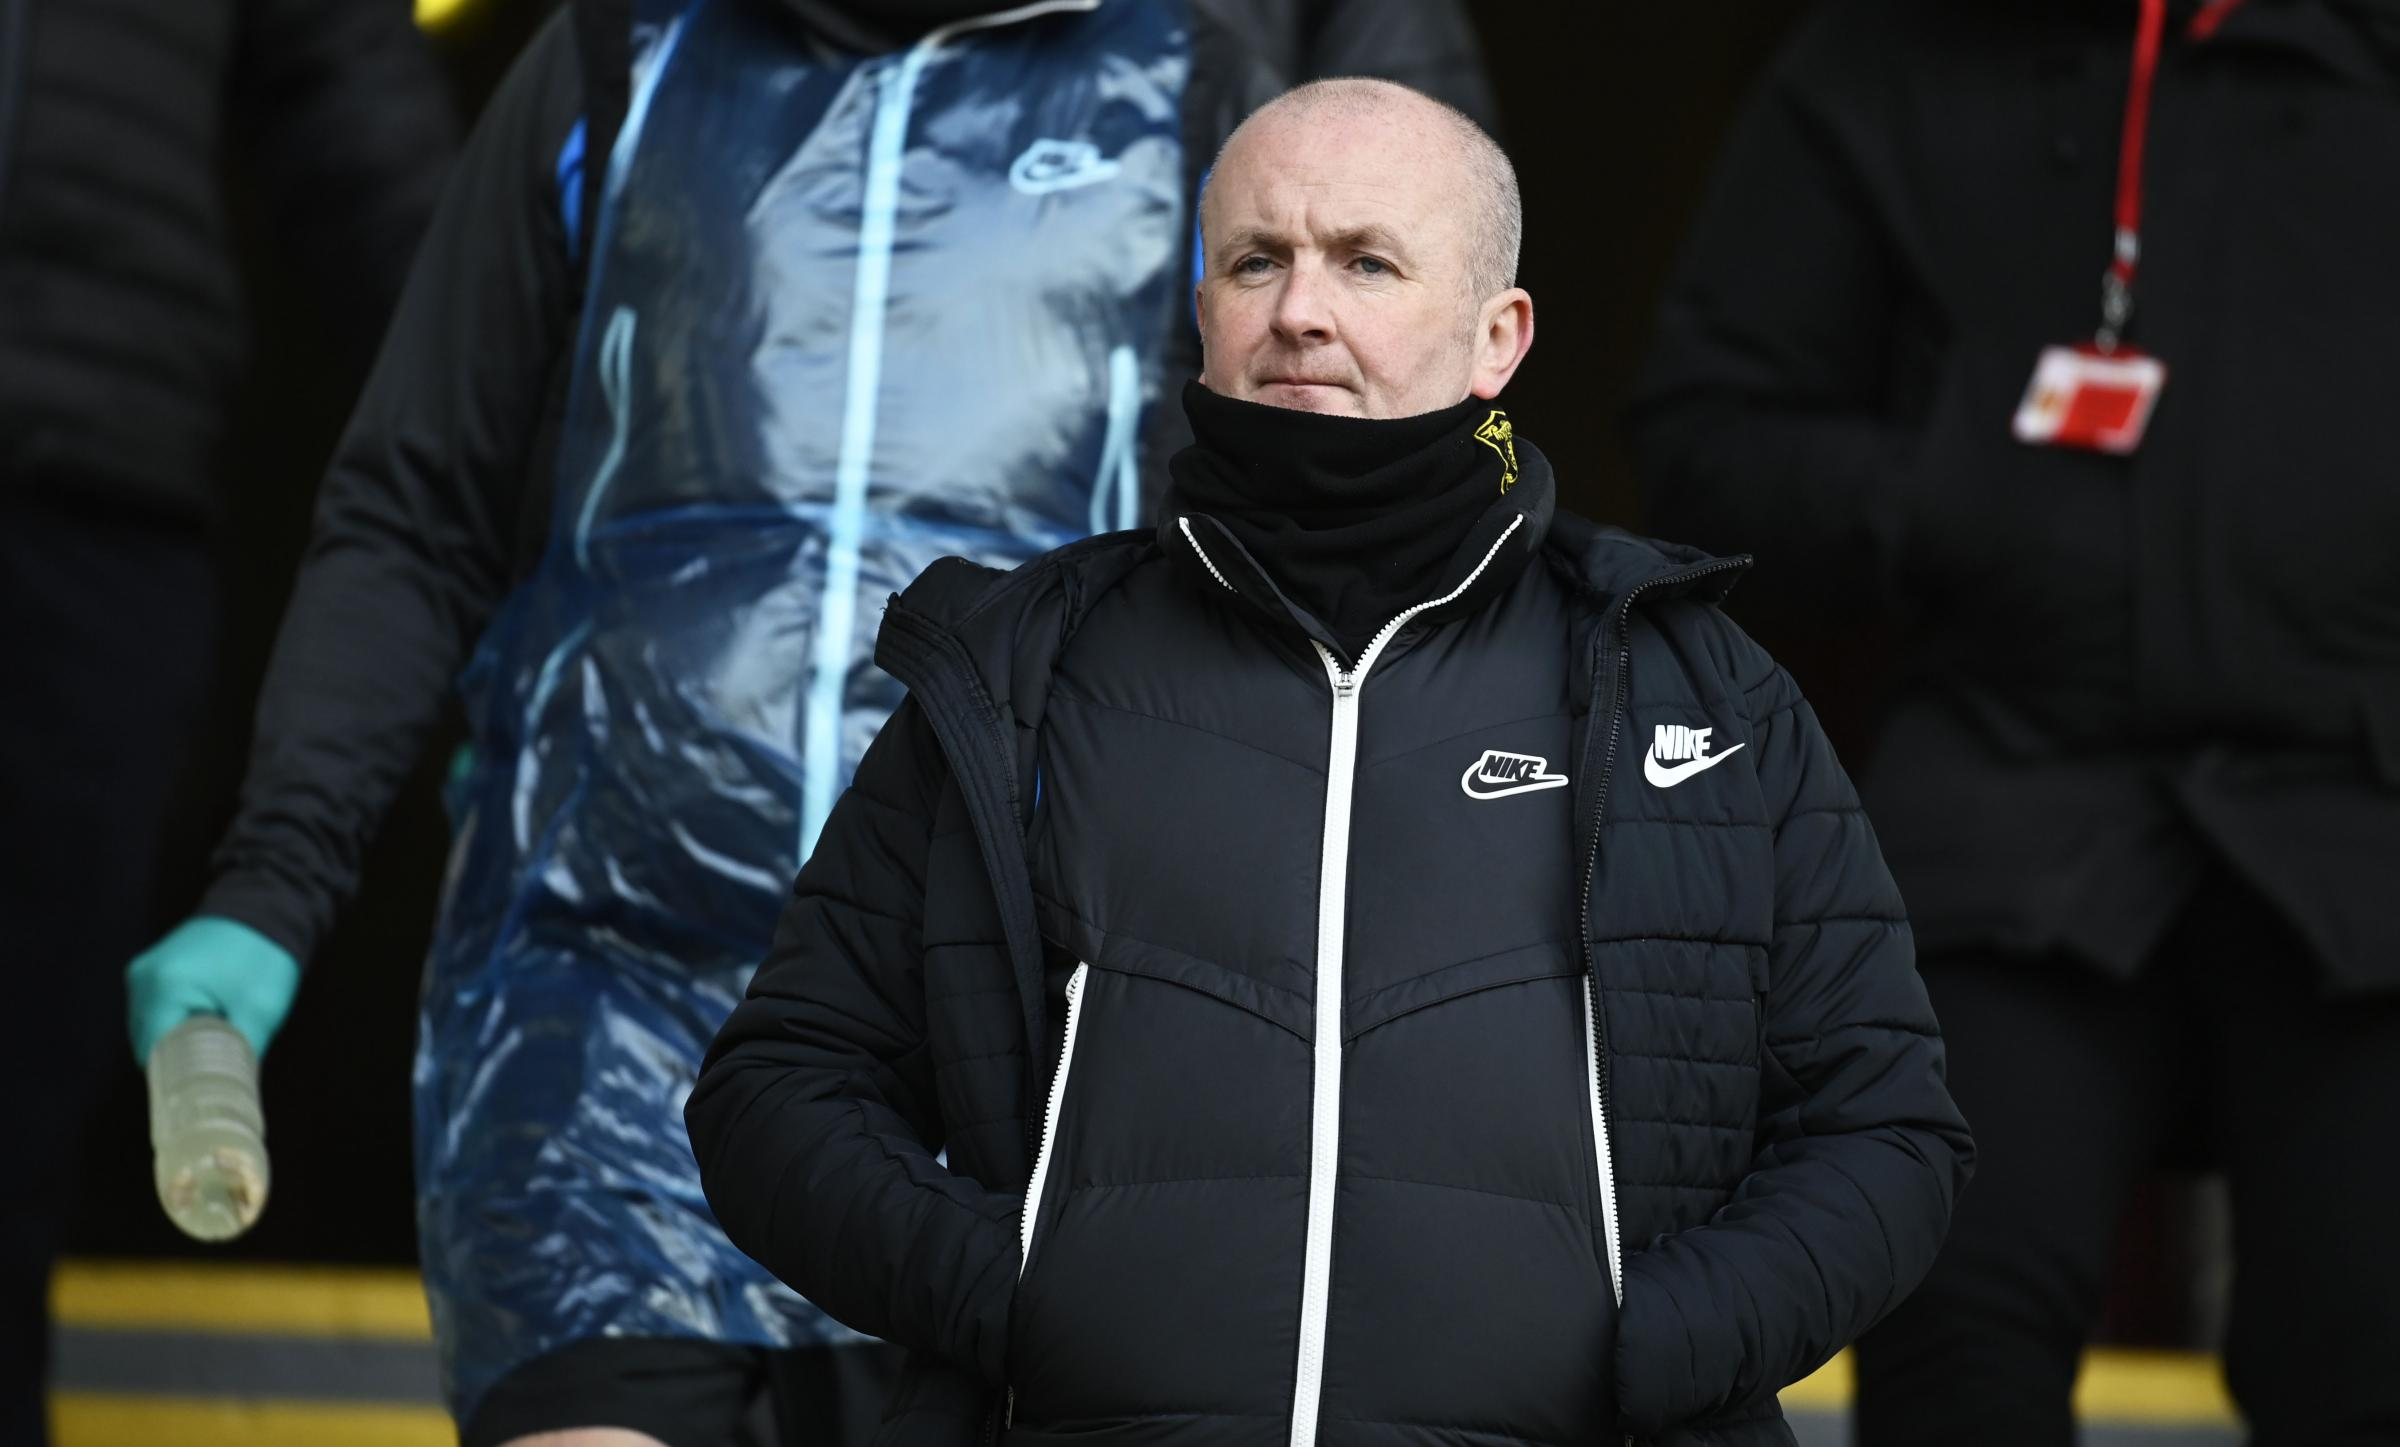 Livingston 2021/22 preview: Summer of change for Martindale won't faze manager or players